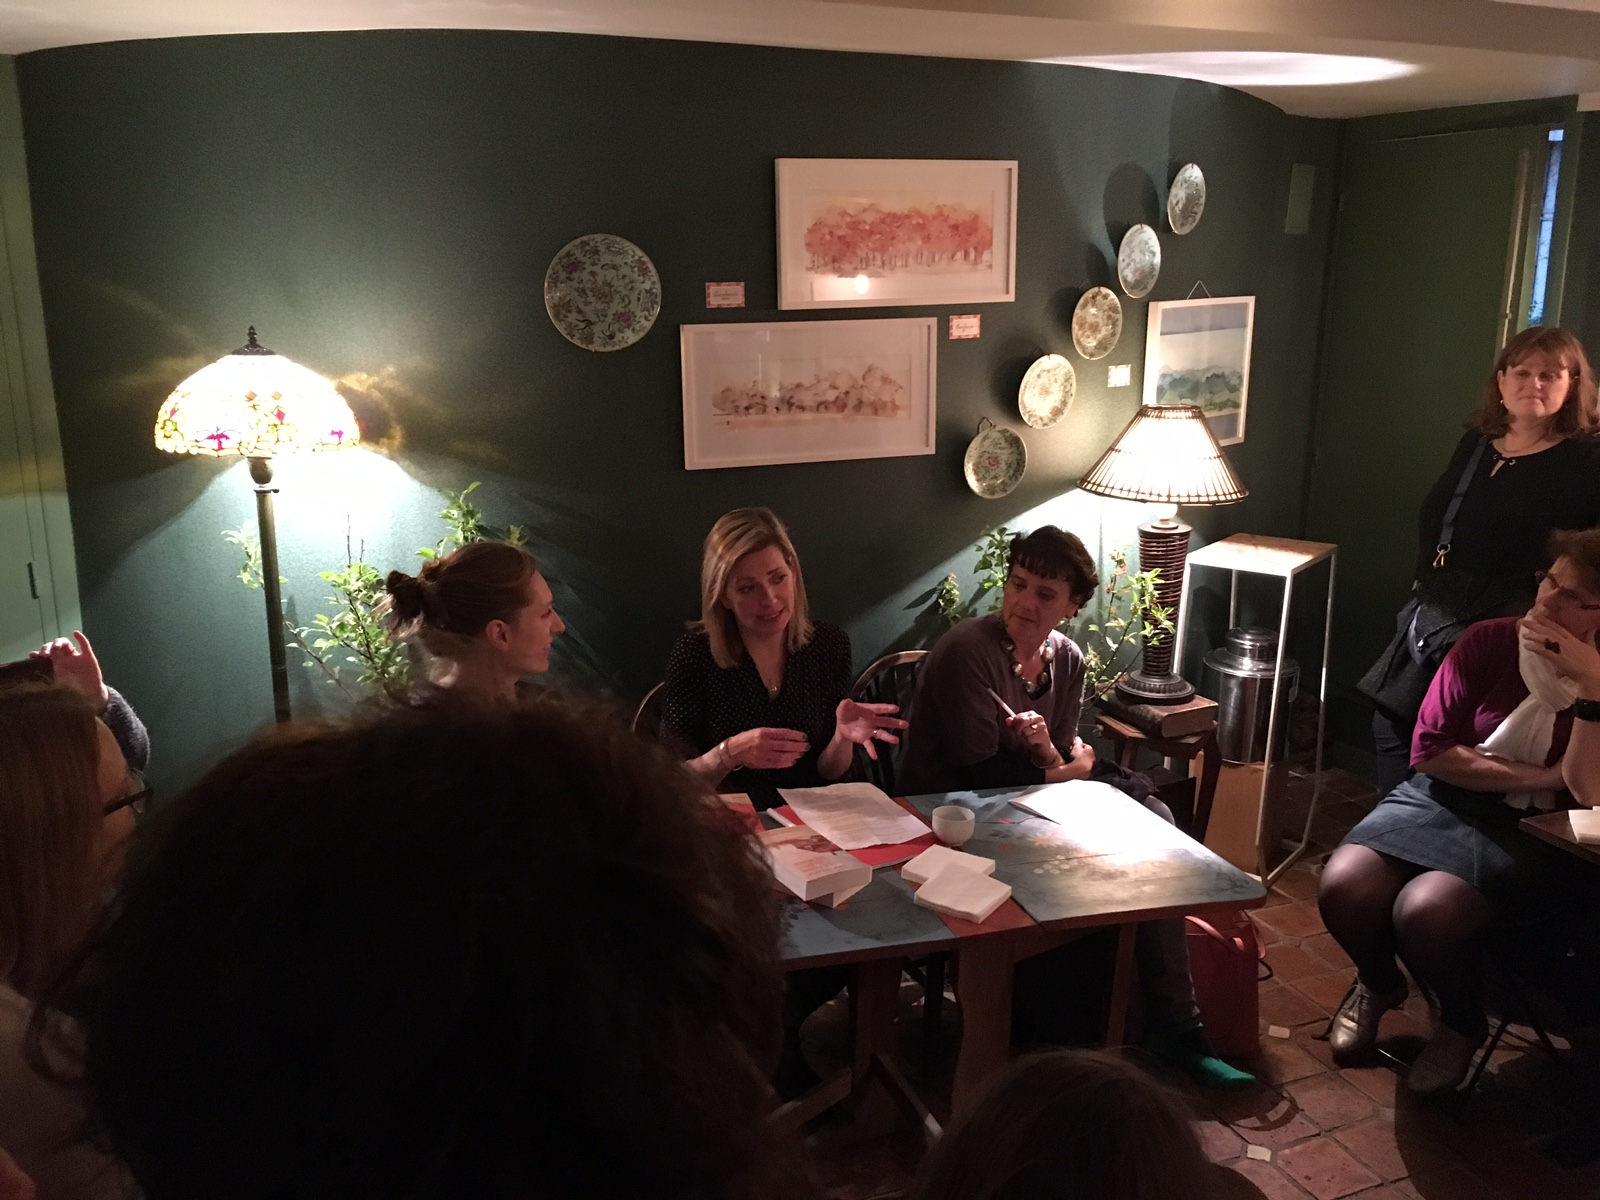 At Thé-rittoire, Paris, discussing La Ferme, and answering questions from bloggeurs, some of whom I recognised from my previous French launch.